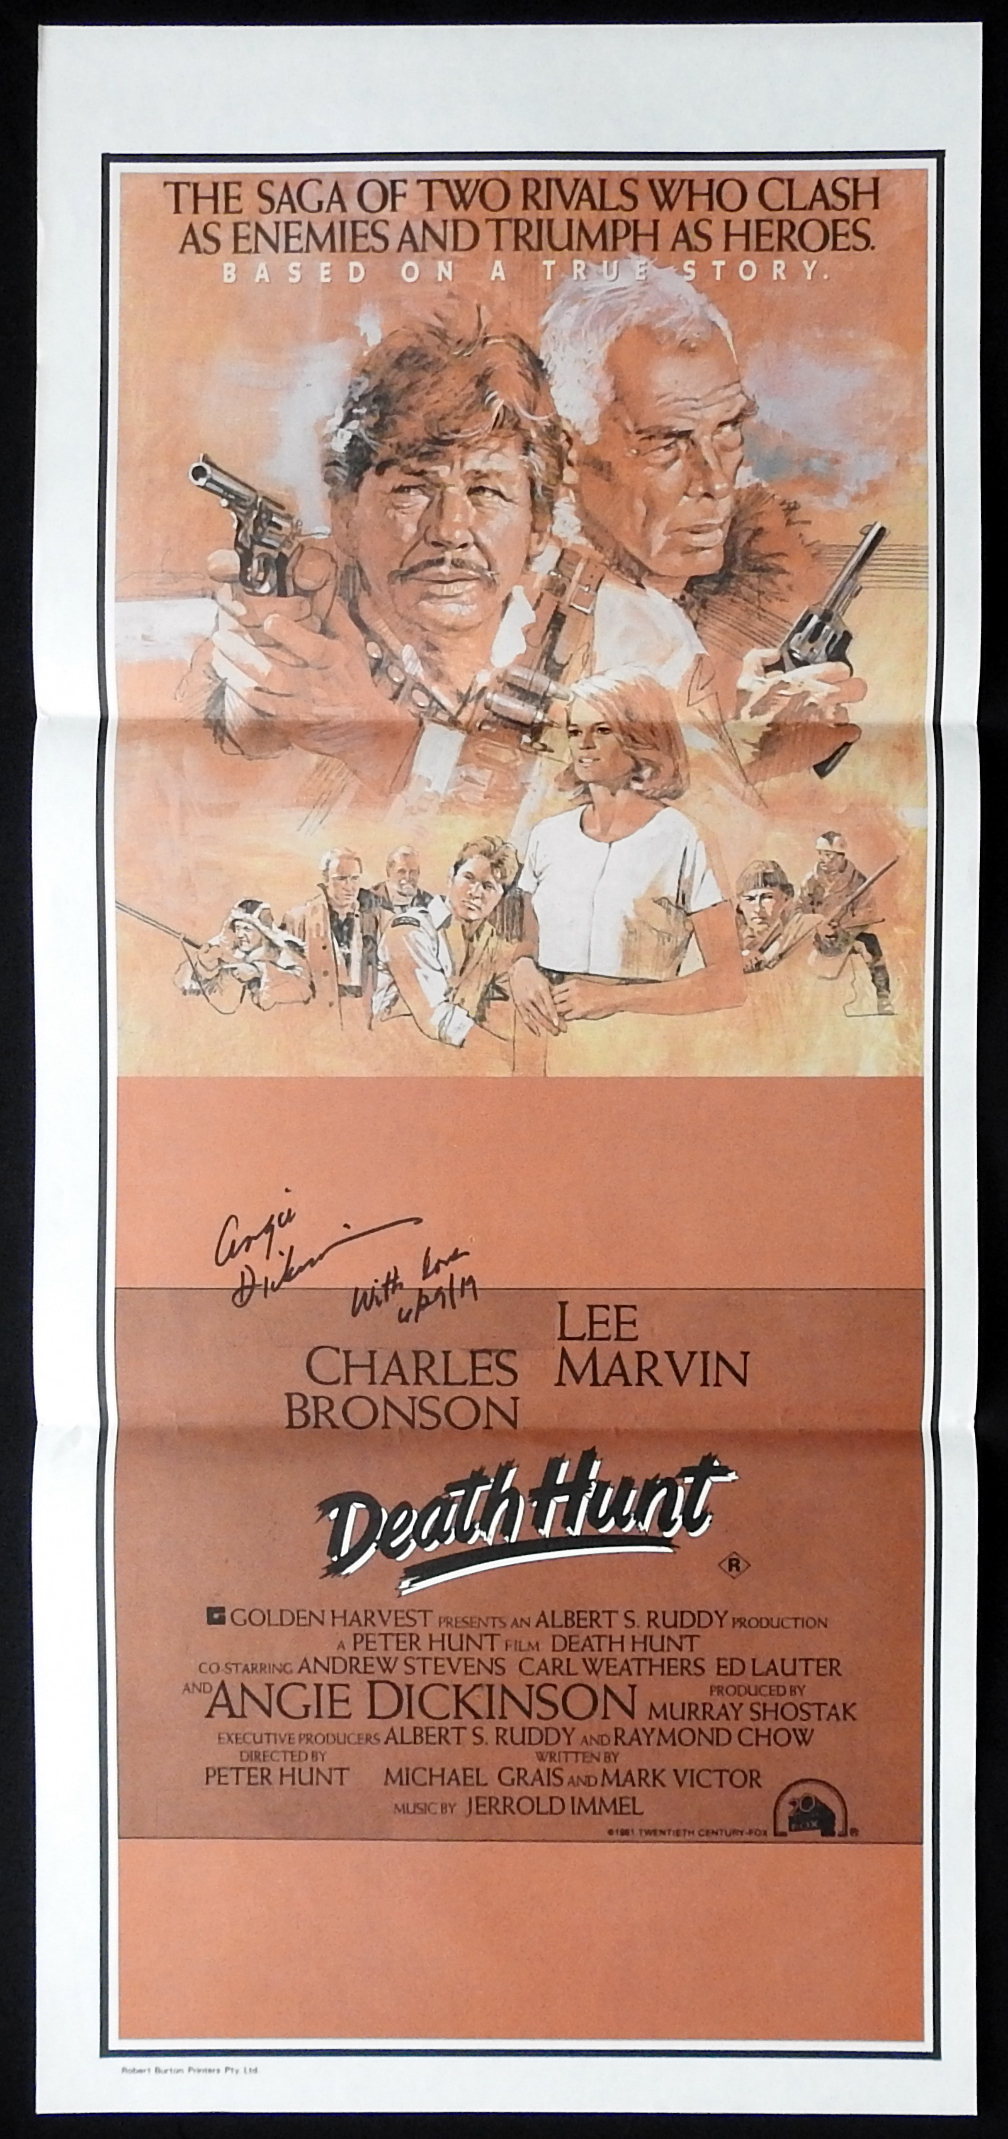 DEATH HUNT Original Daybill Movie Poster ANGIE DICKINSON Autograph